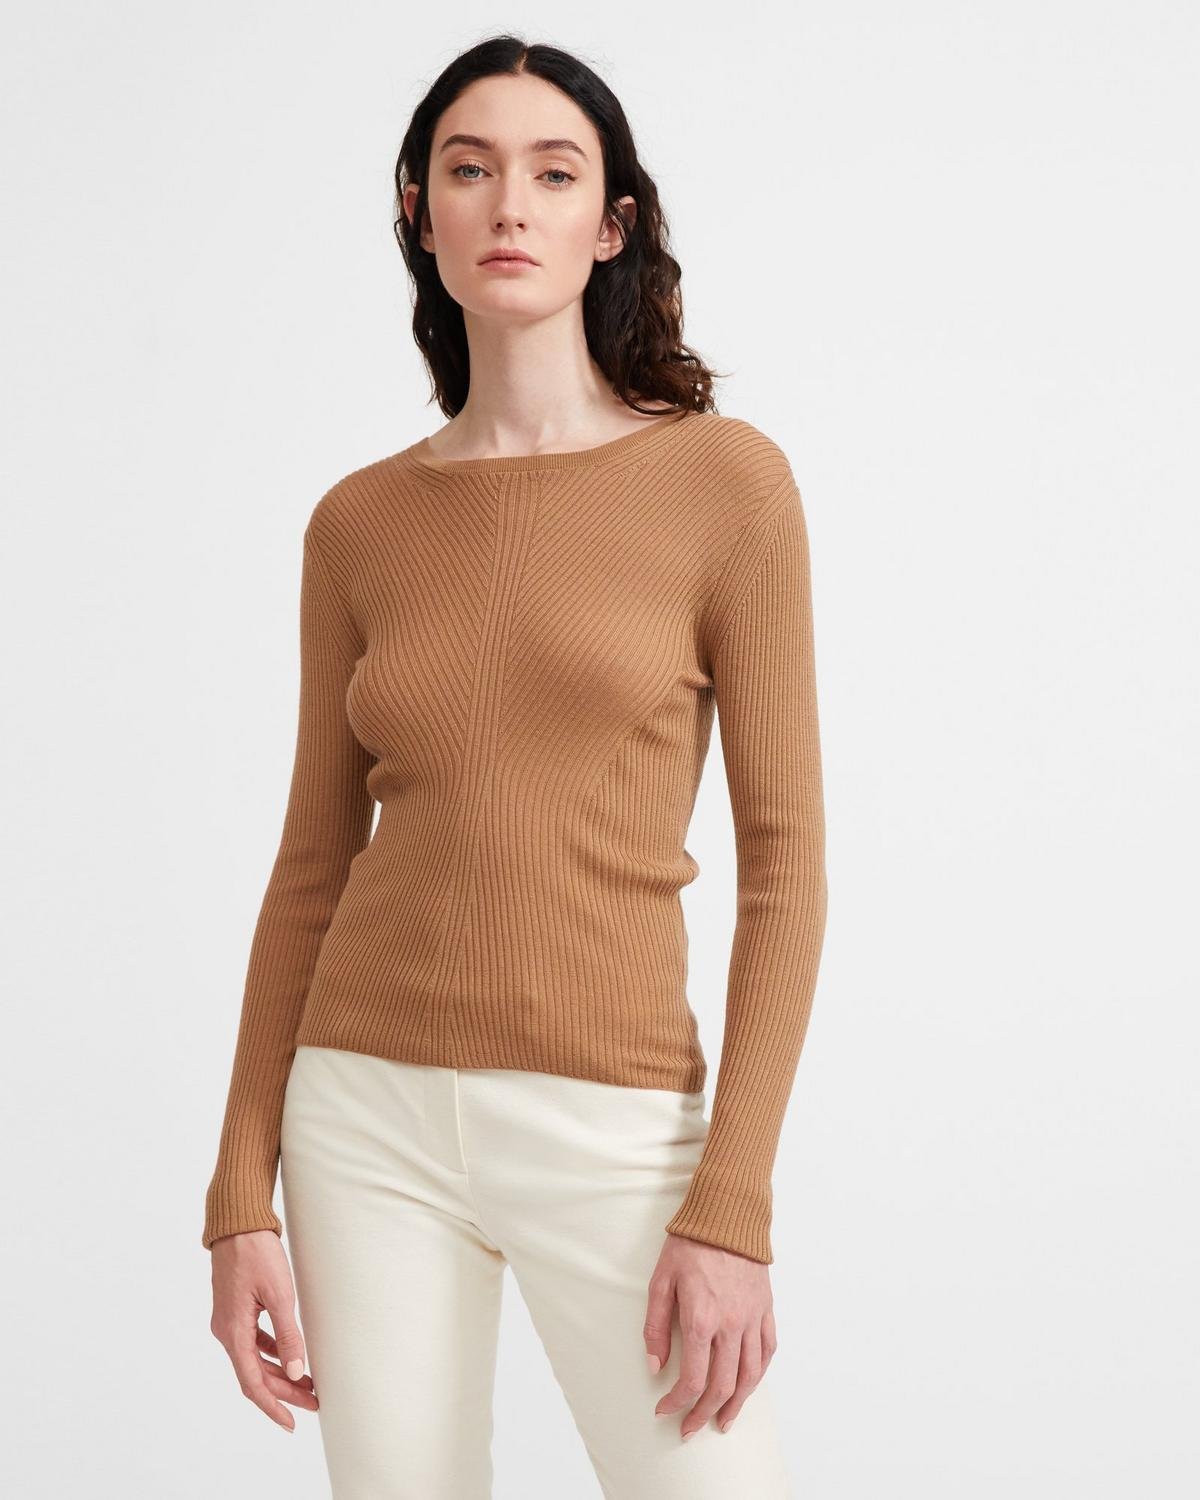 Moving Rib Crewneck Sweater